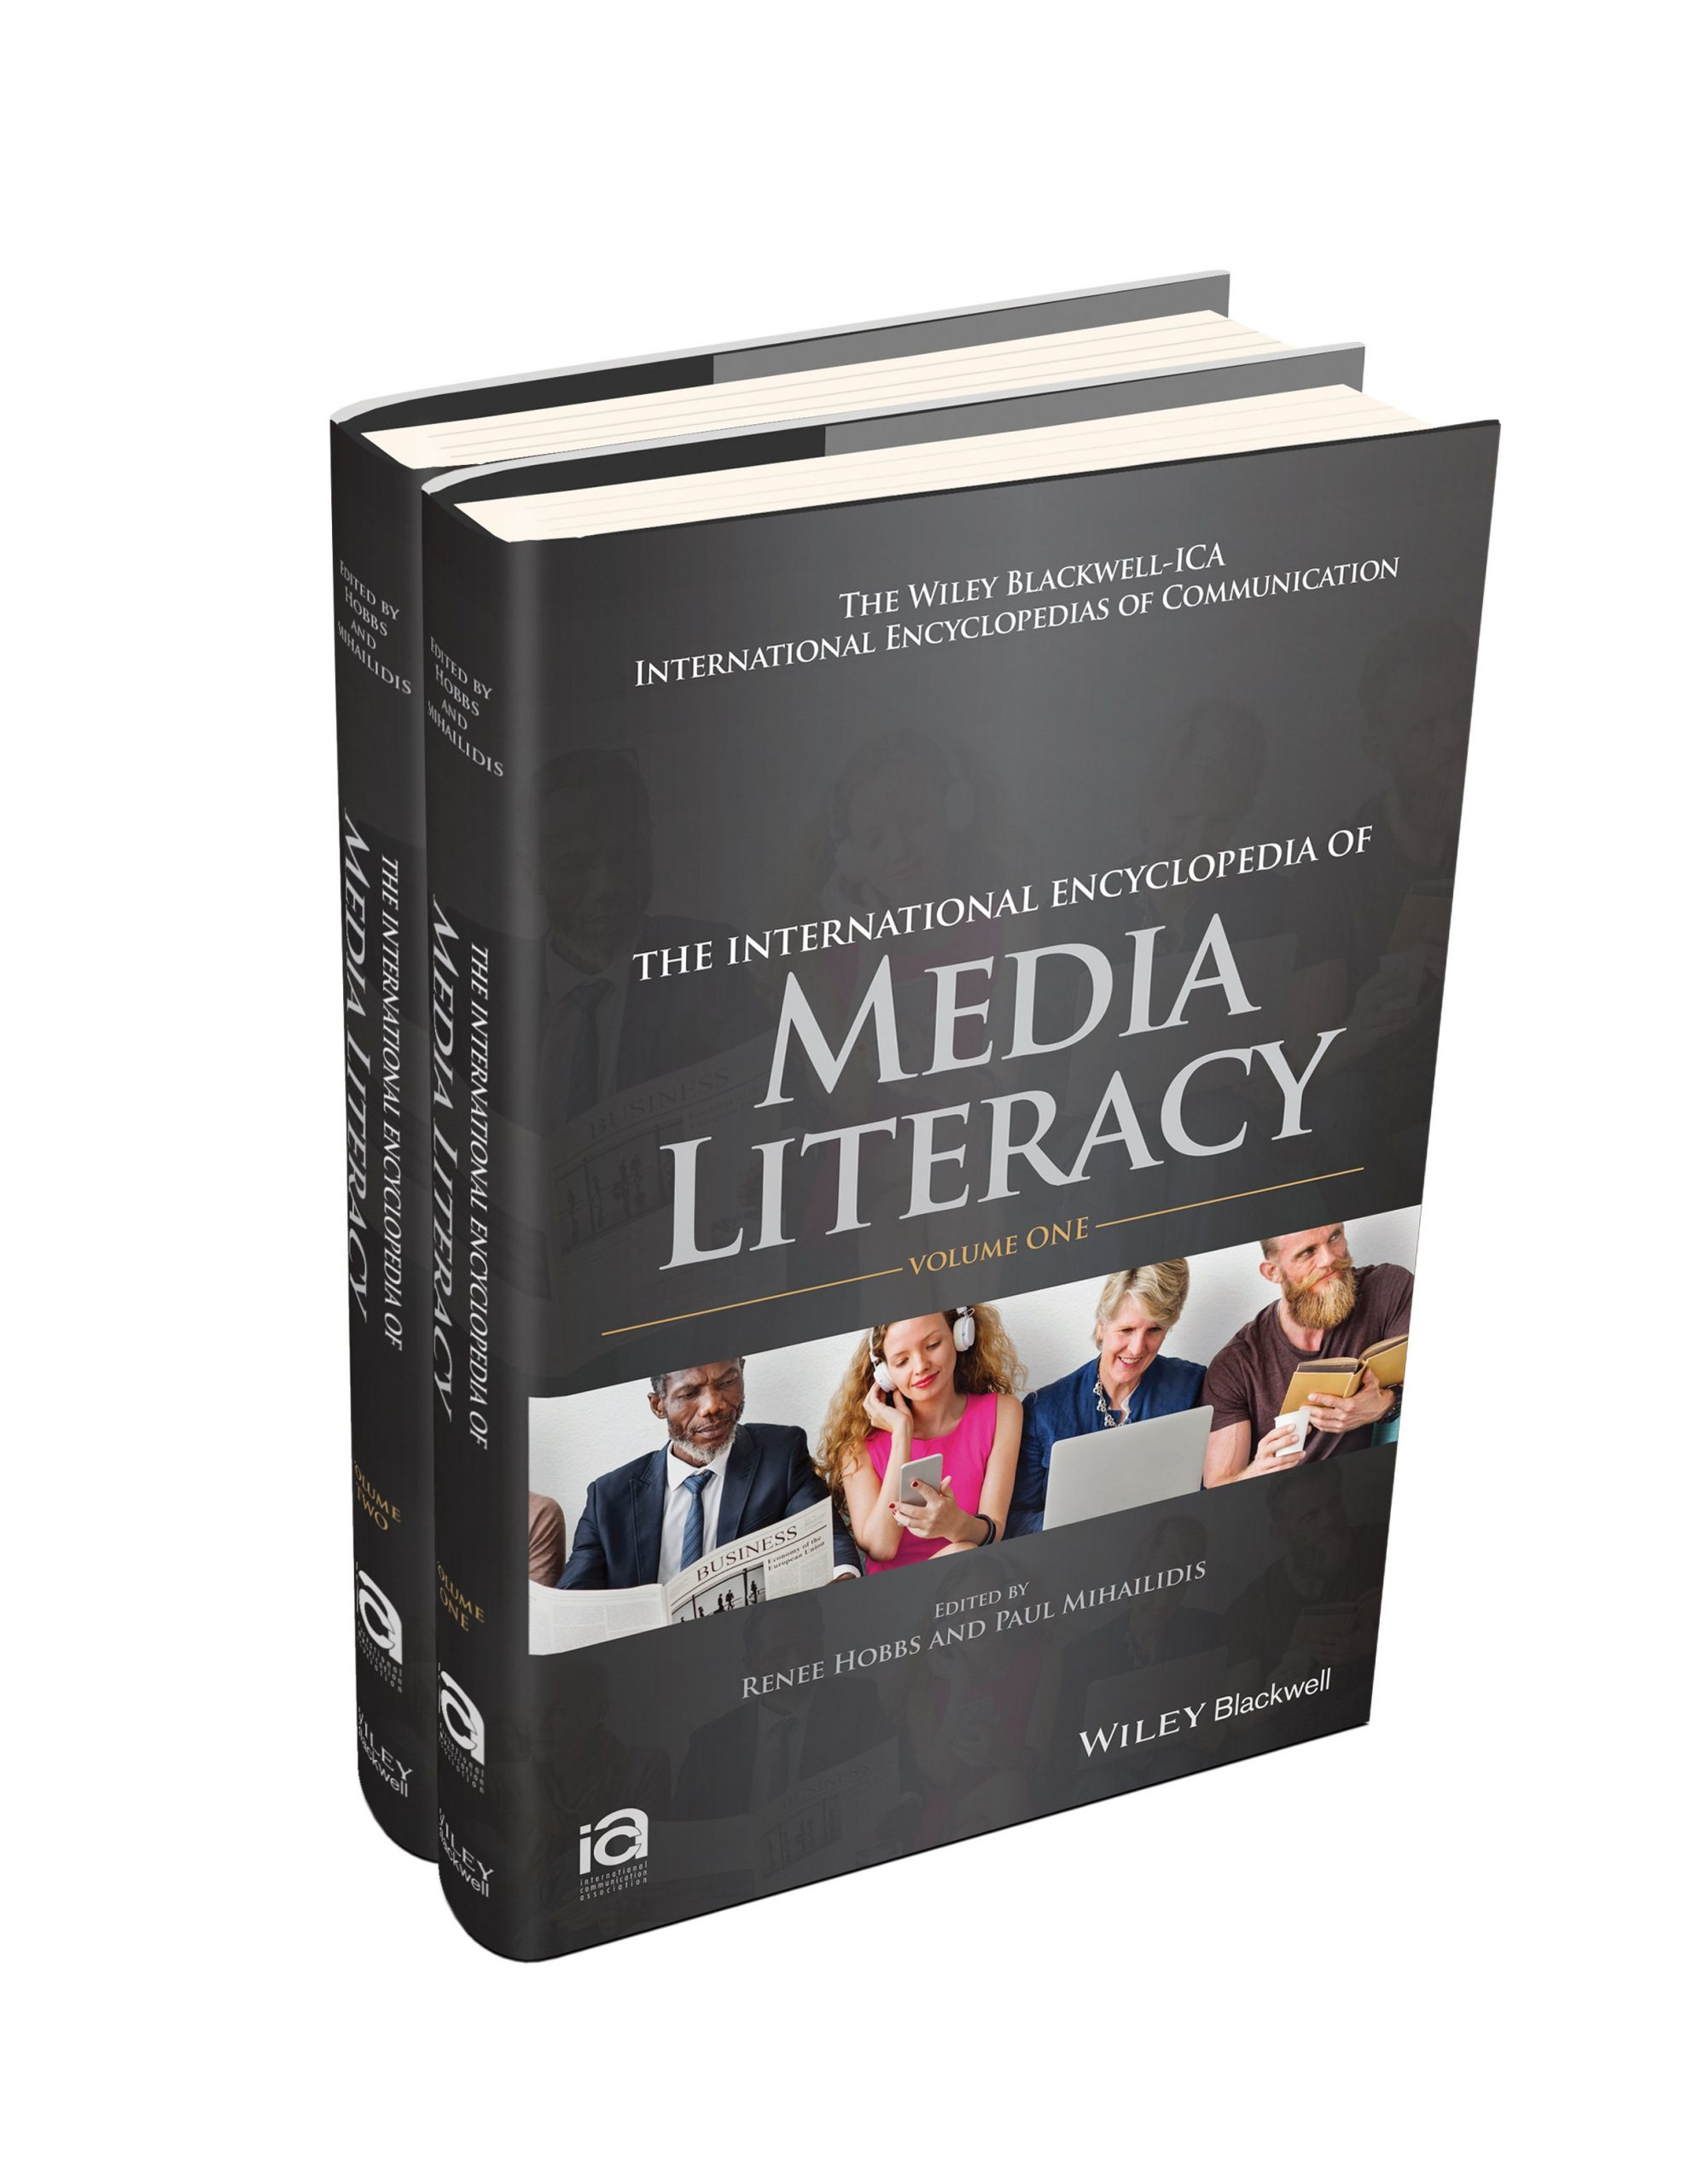 The International Encyclopedia of Media Literacy